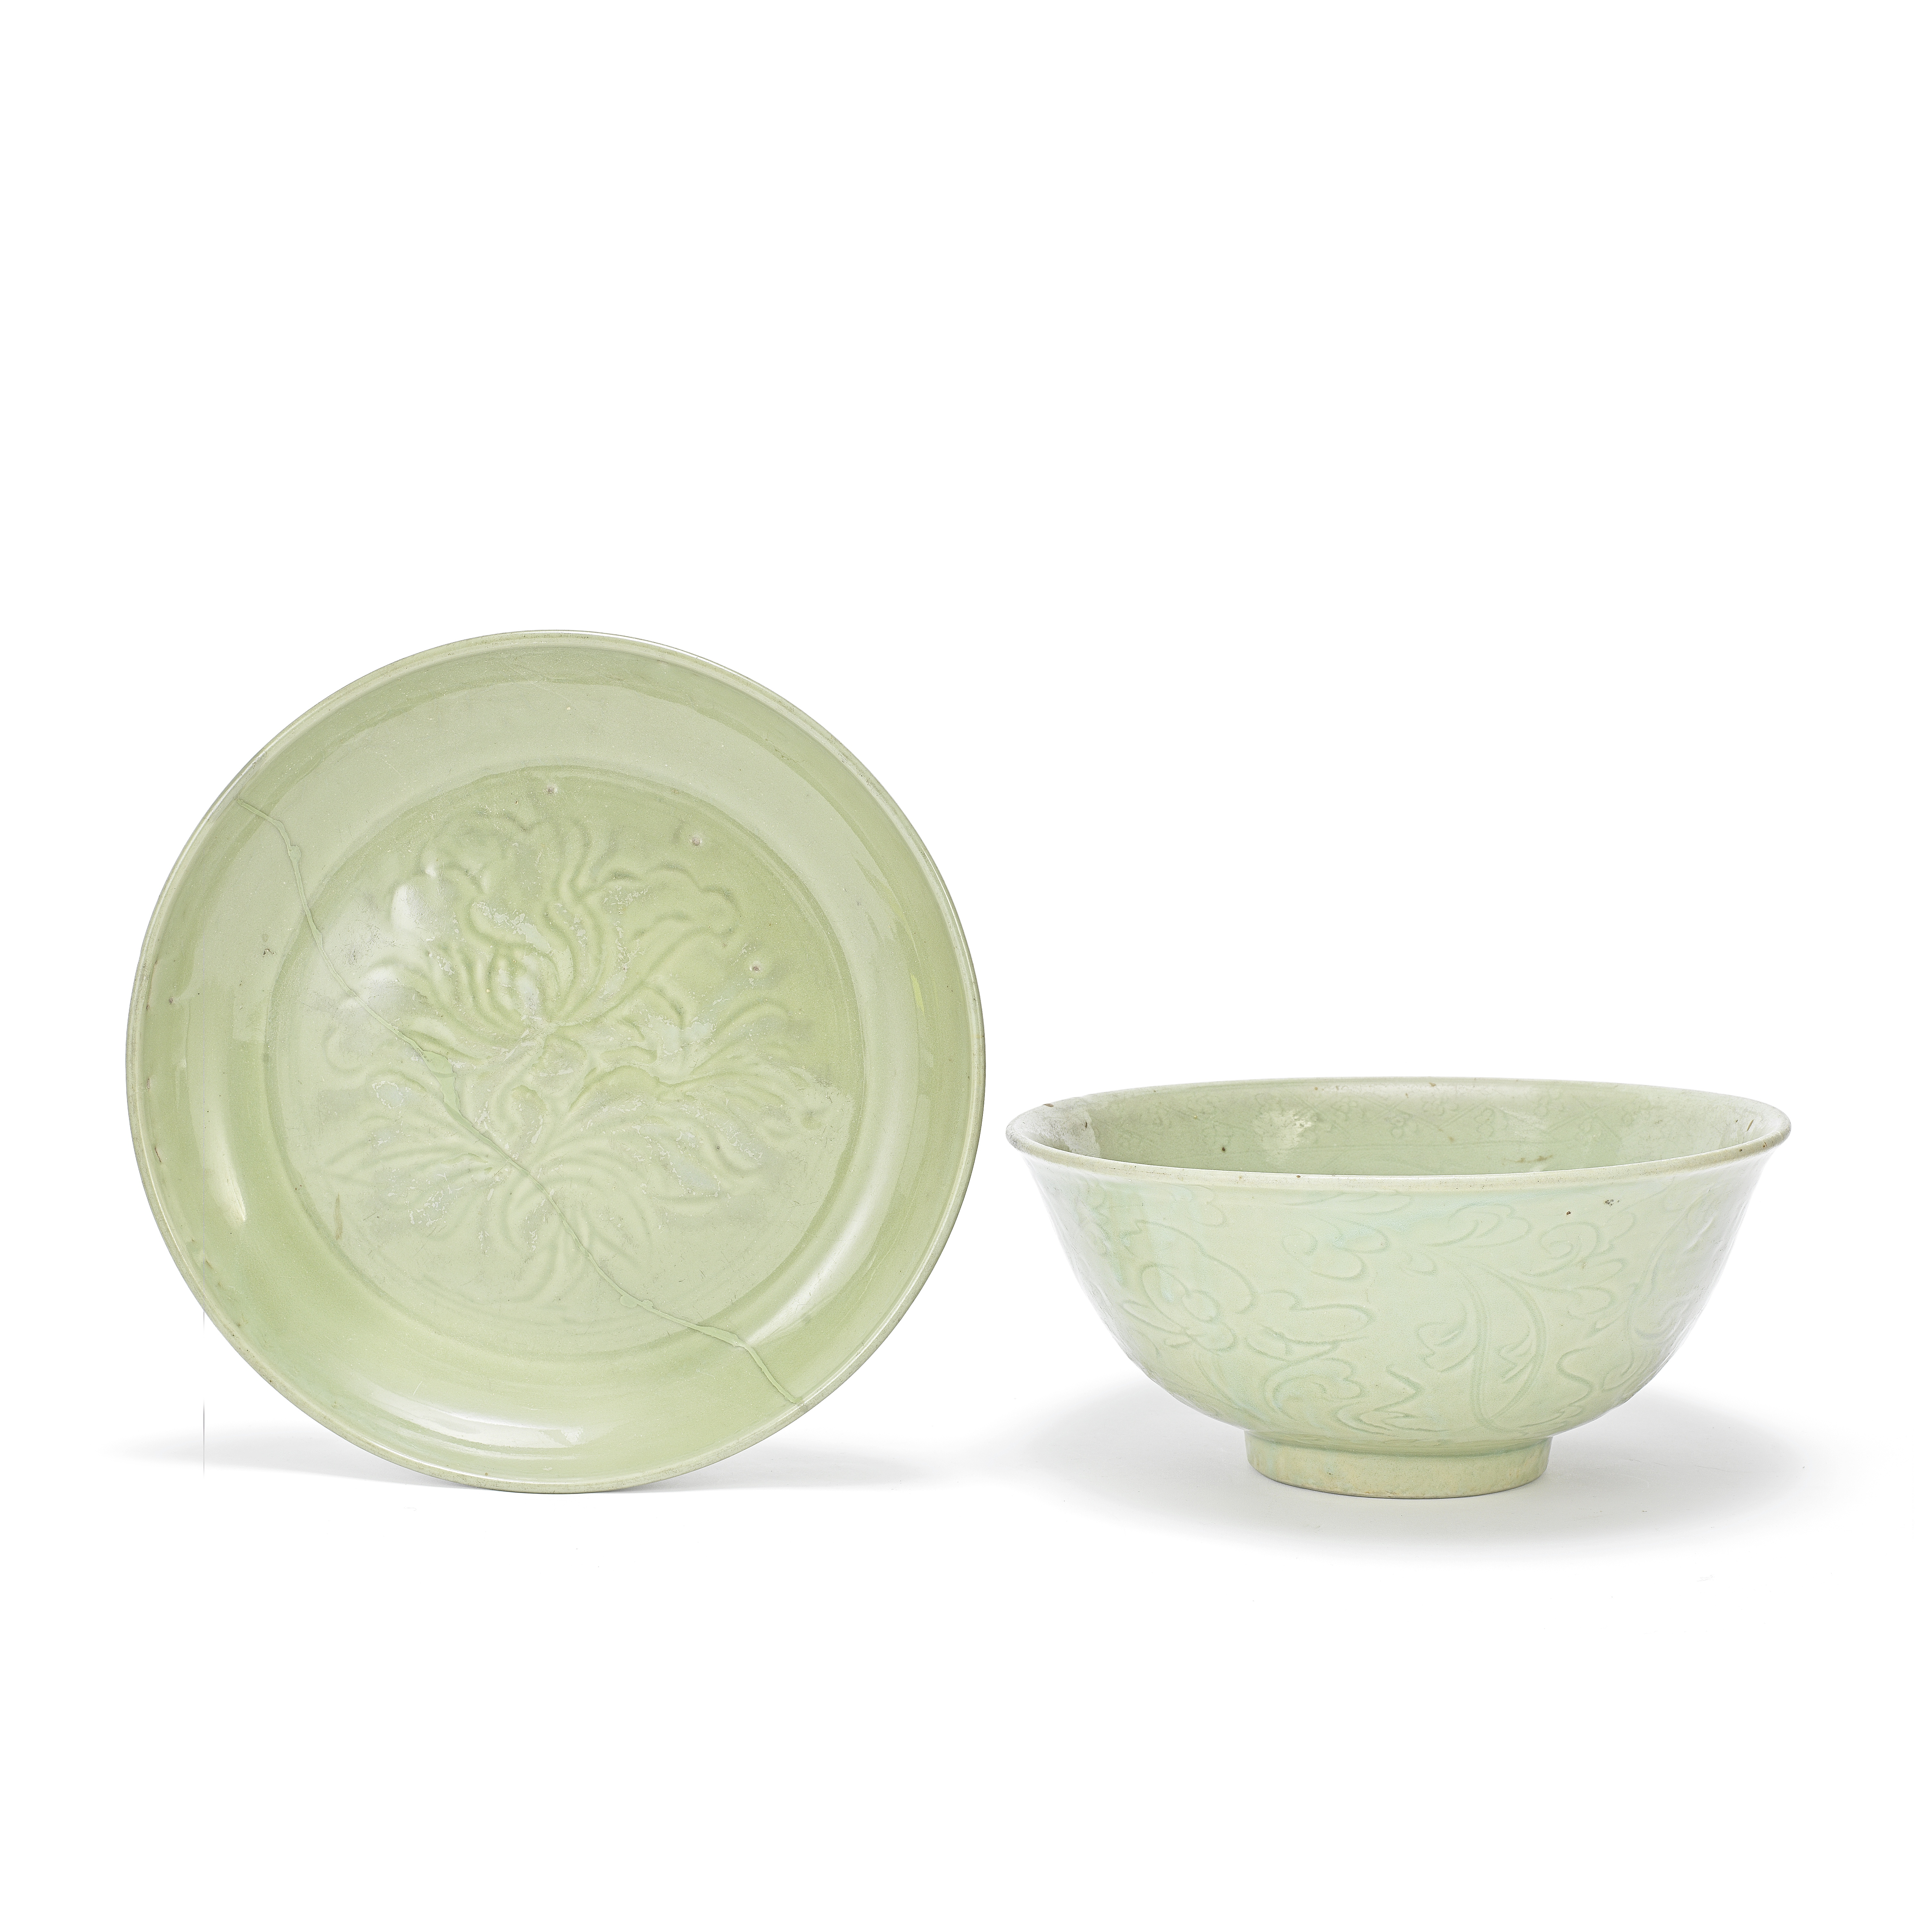 A CARVED LONGQUAN CELADON-GLAZED DEEP BOWL AND A LONGQUAN CELADON-GLAZED 'LOTUS' DISH Early Ming ...